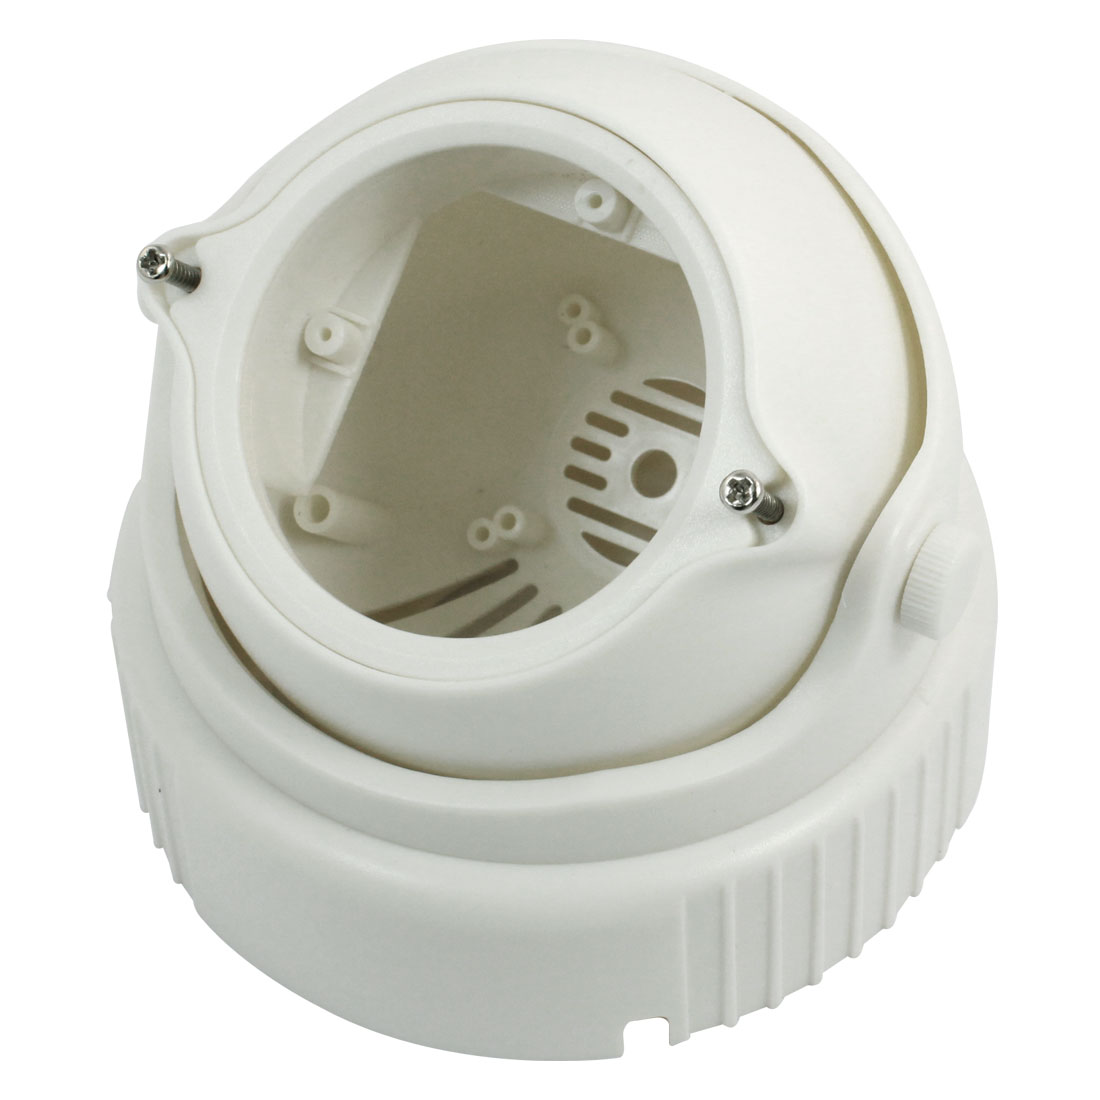 "Surveillance White Plastic CCTV Dome Camera Housing Case 4.7"" Dia"